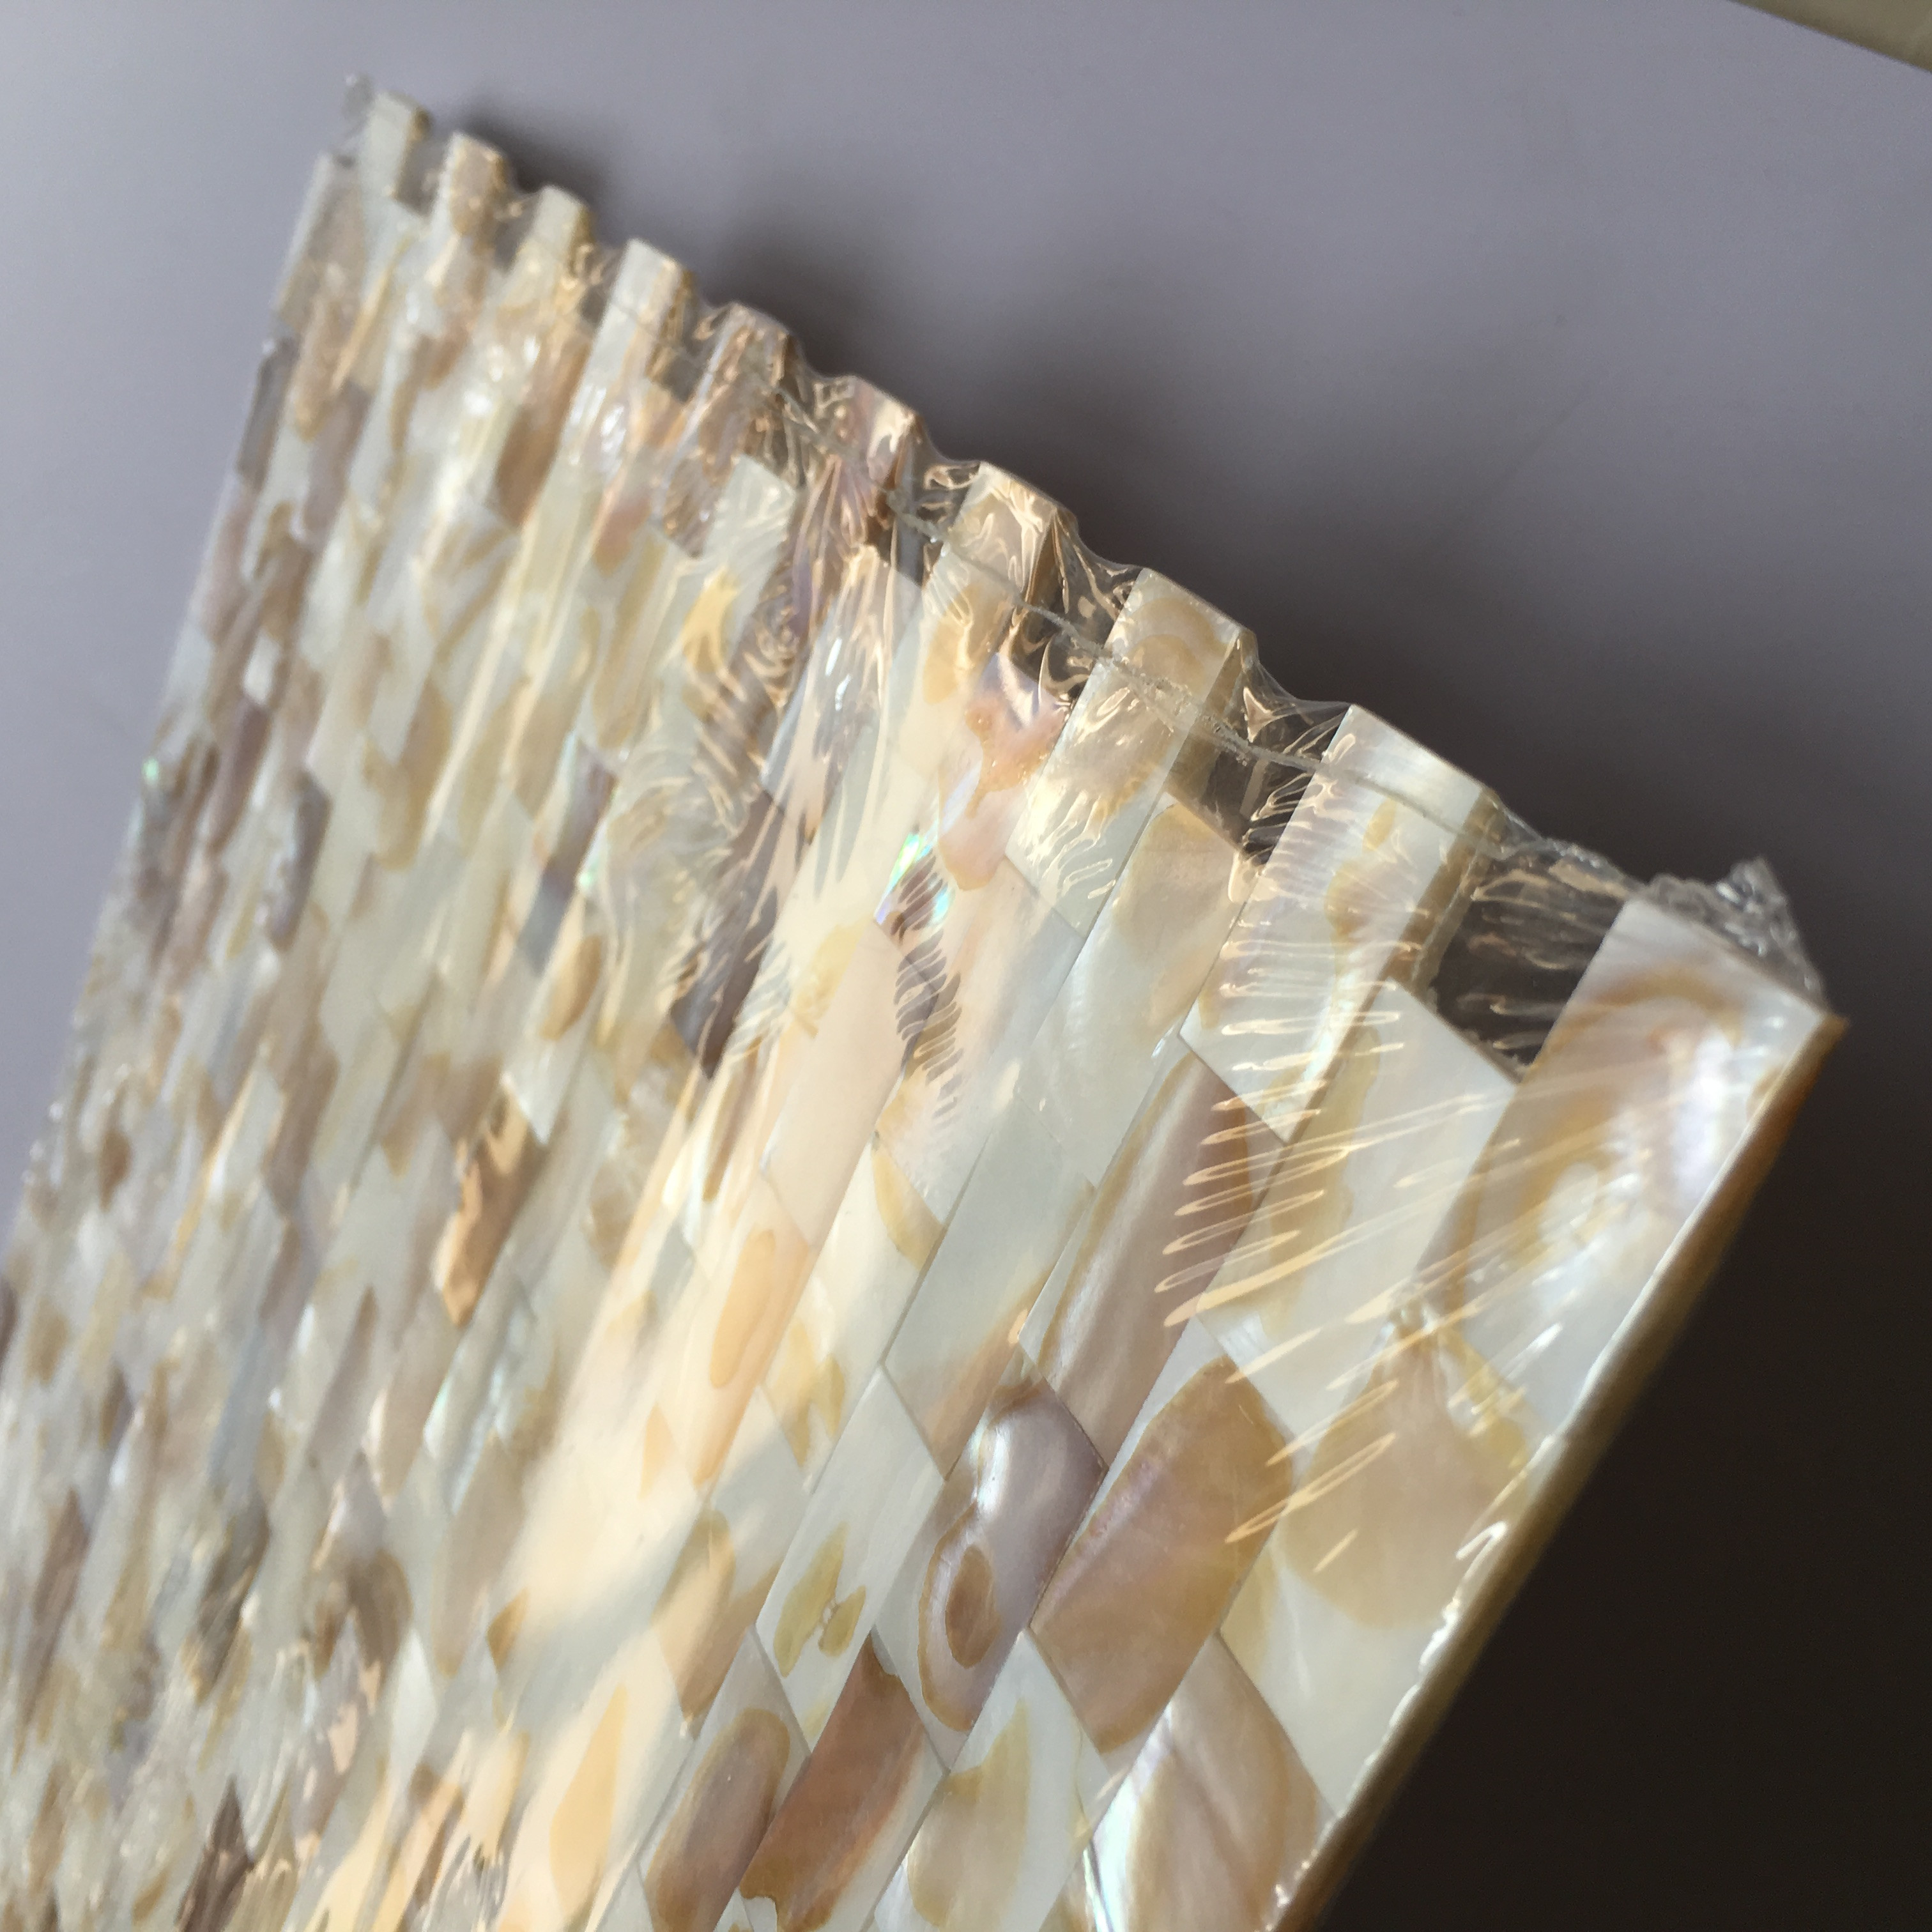 Natural Shell Mother of Pearl Mosaic Tile Kitchen Backsplash Bathroom shower Home wall decor LSMP03 in Wallpapers from Home Improvement